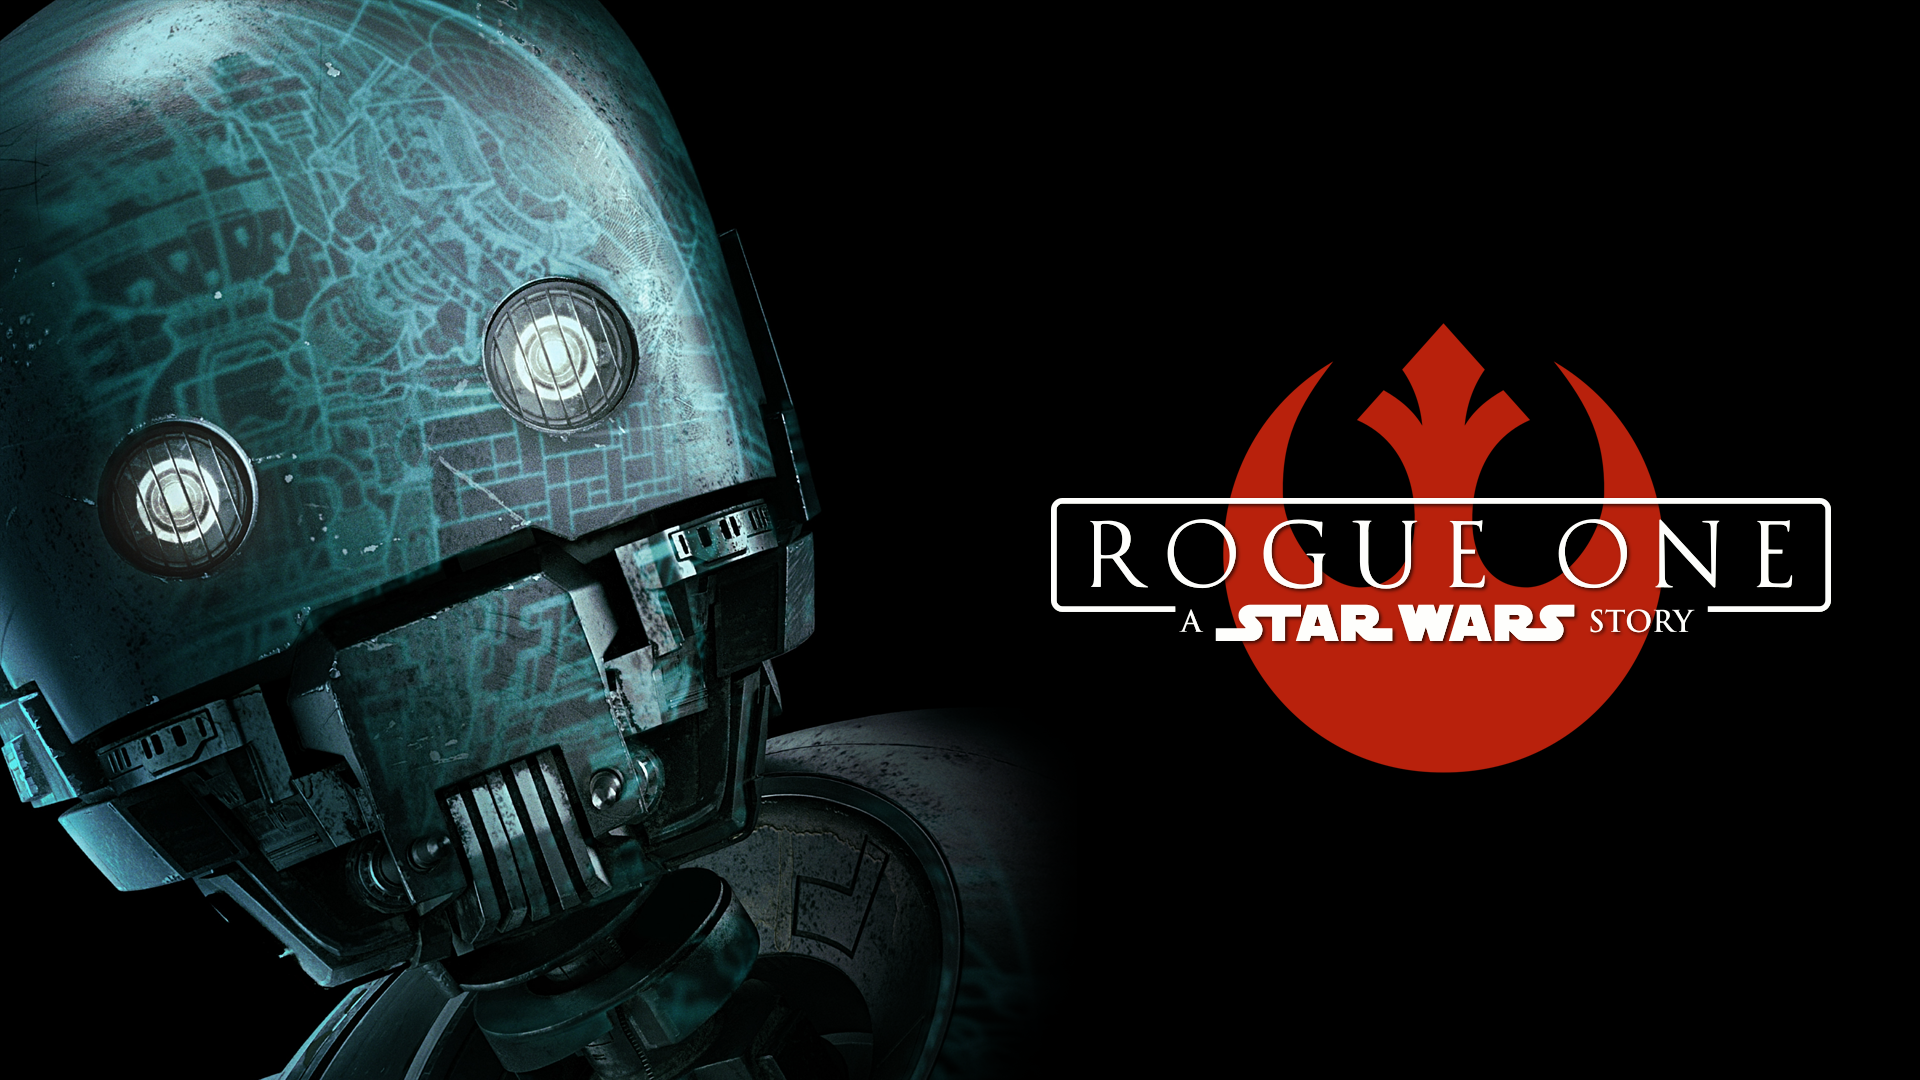 rogue one wallpaper director - photo #5